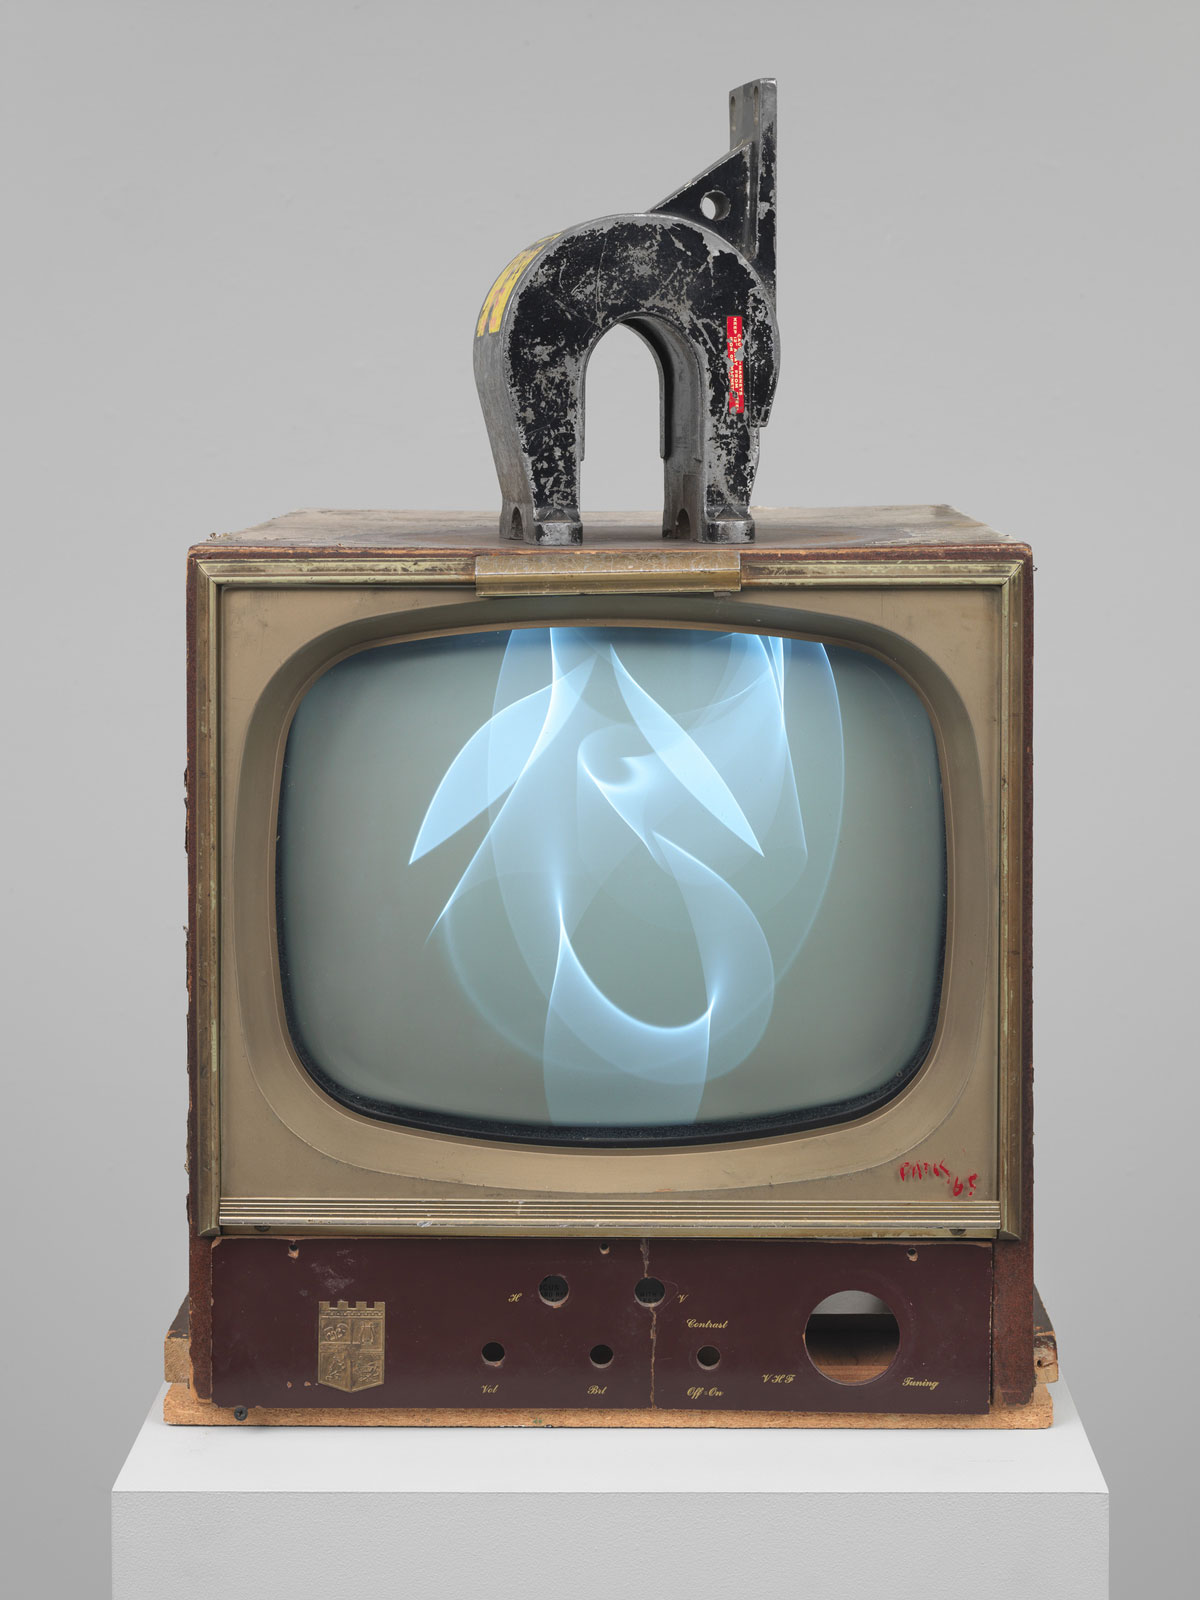 A U-shaped magnet on top of a CRT television creates an image of wavy, overlapping white lines on the dark gray screen.